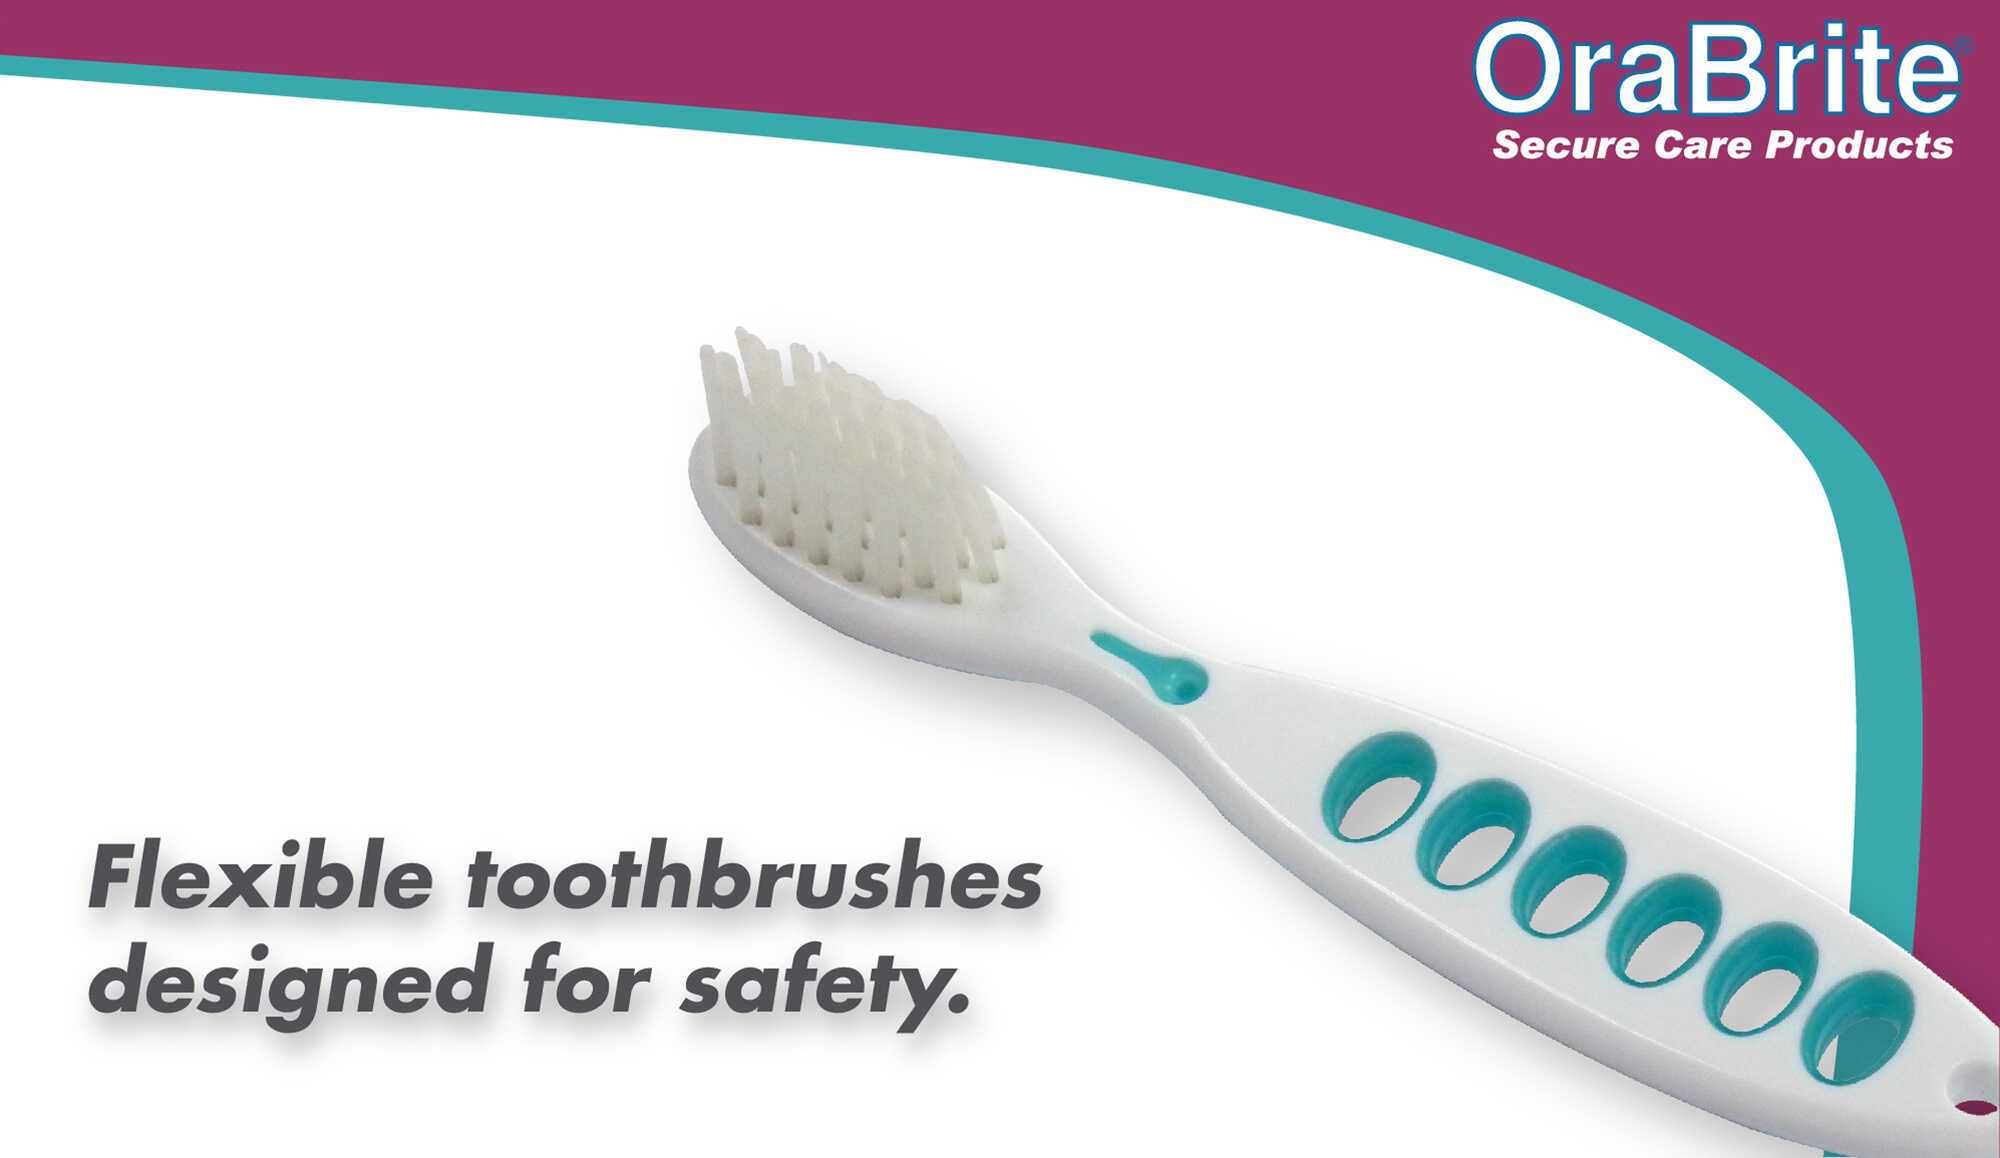 OraBrite Secure Care Products